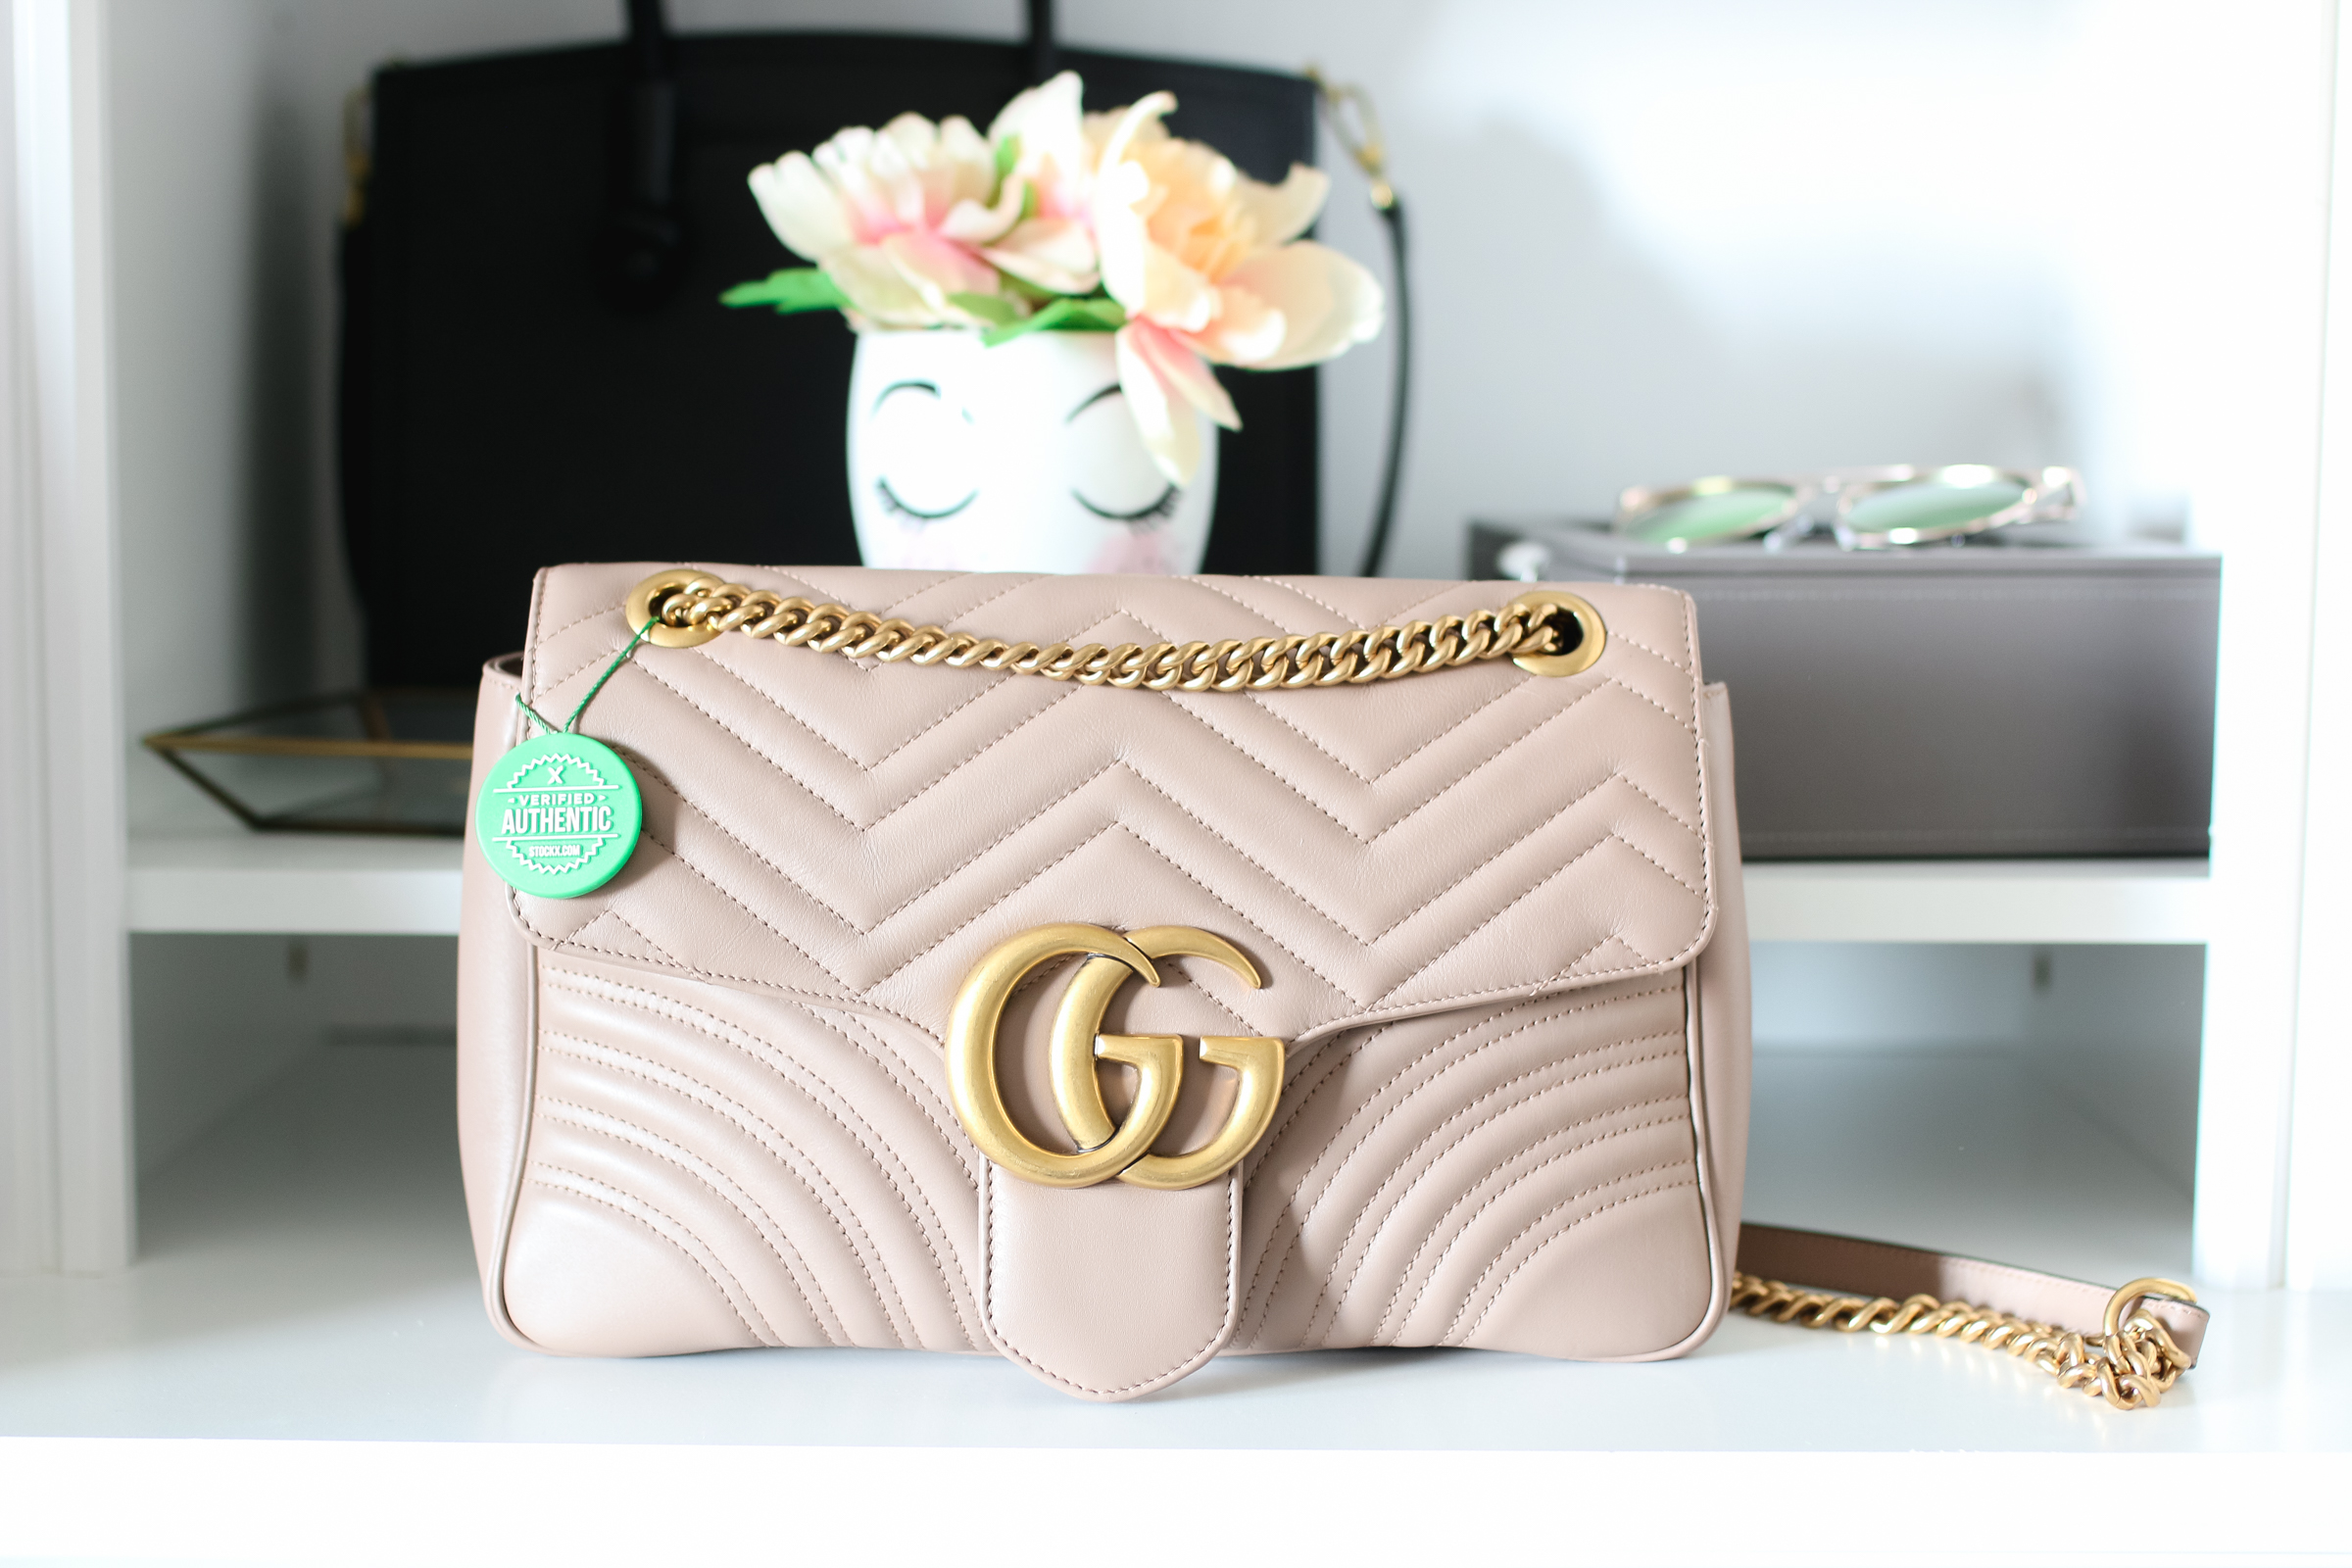 How To Score A Designer Handbag For Less On StockX by popular Utah style blogger Sandy A La Mode